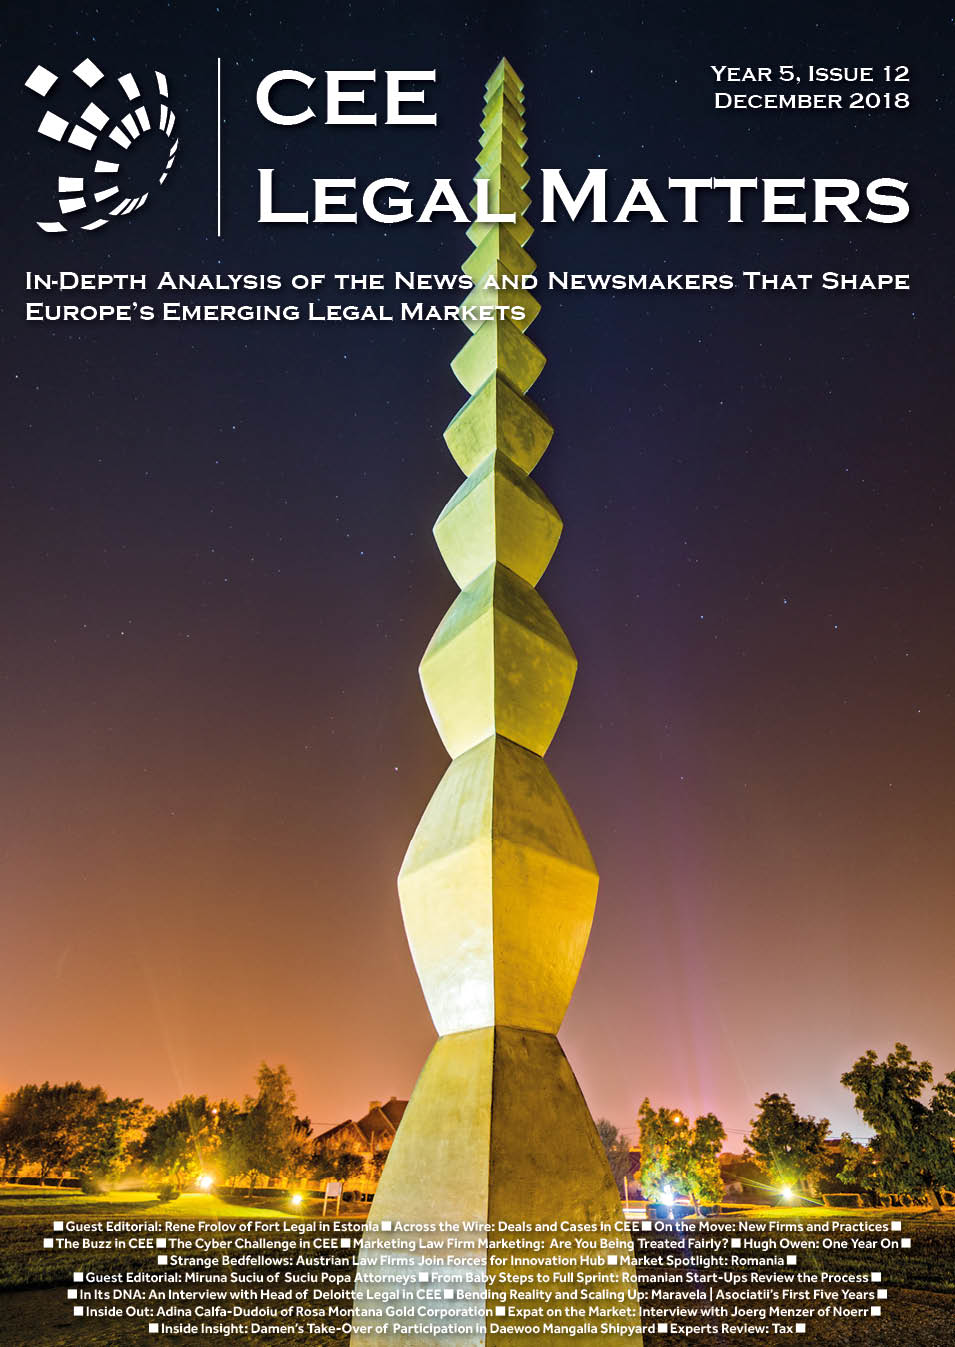 CEE Legal Matters: Issue 5.12.